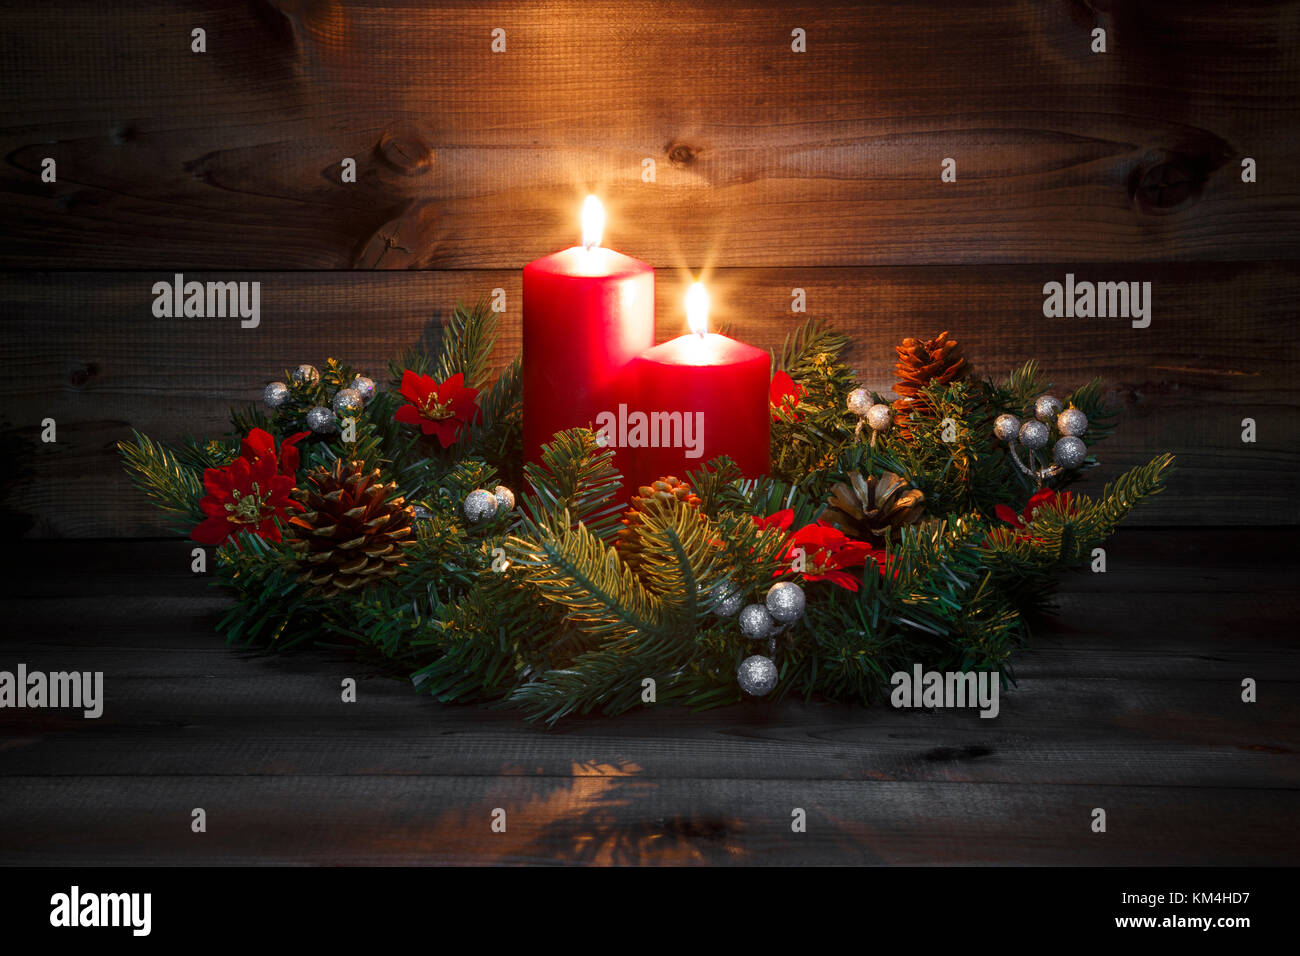 Weihnachtsbilder Zum 2 Advent.Advent Flower Arrangement Stock Photos Advent Flower Arrangement